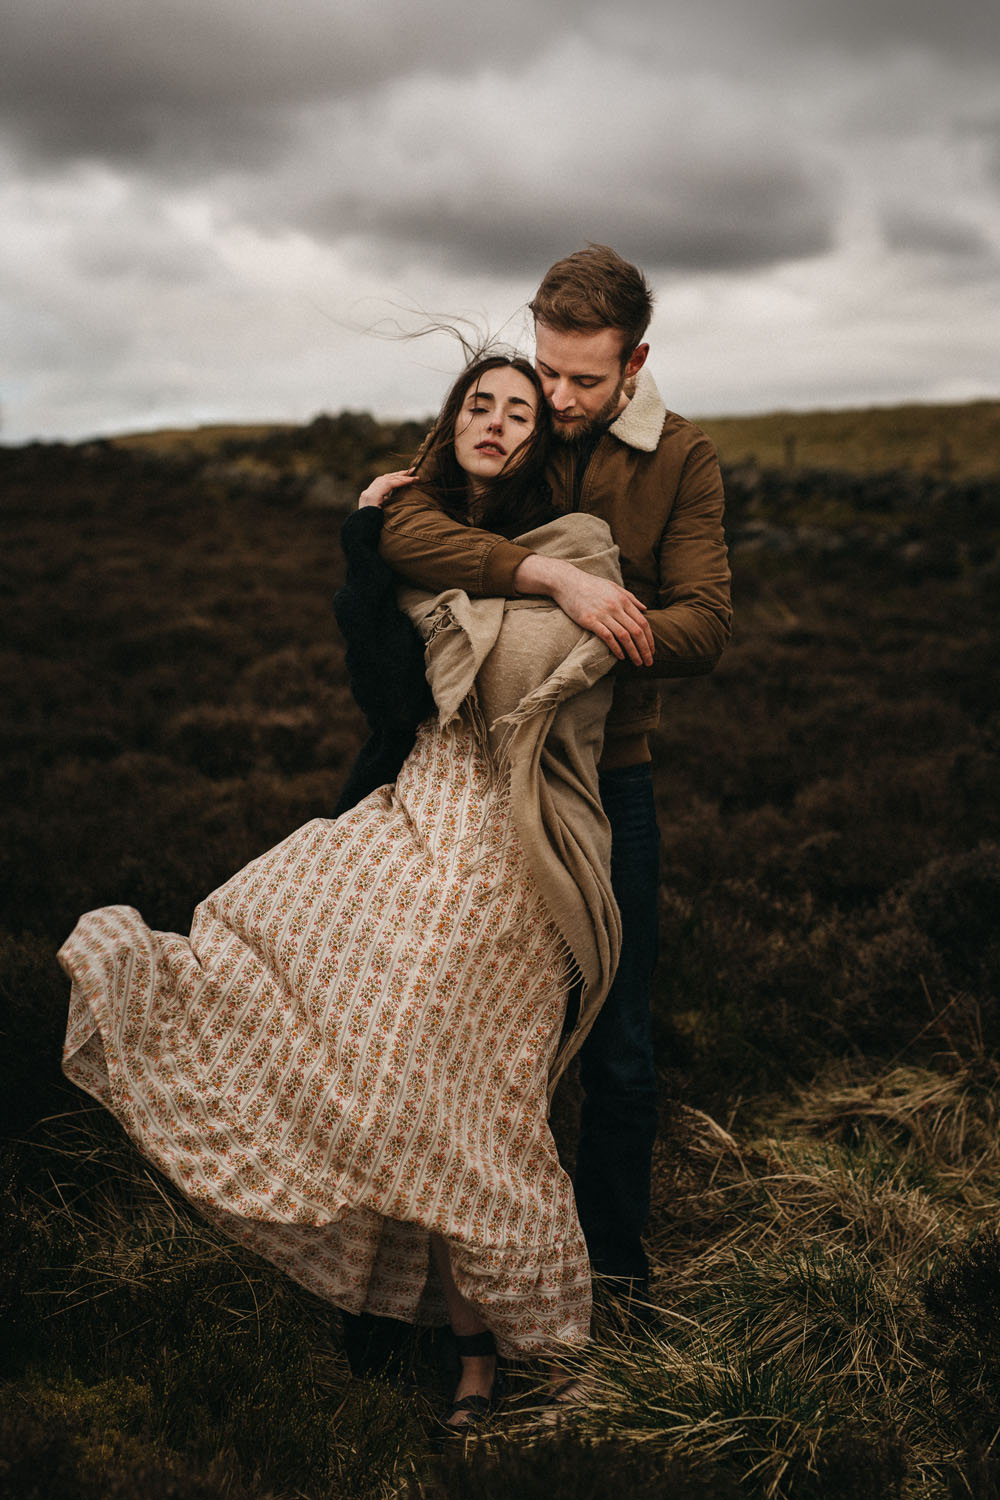 Epic Coupleshooting in the scottish Highlands - Raissa + Simon Fotografie